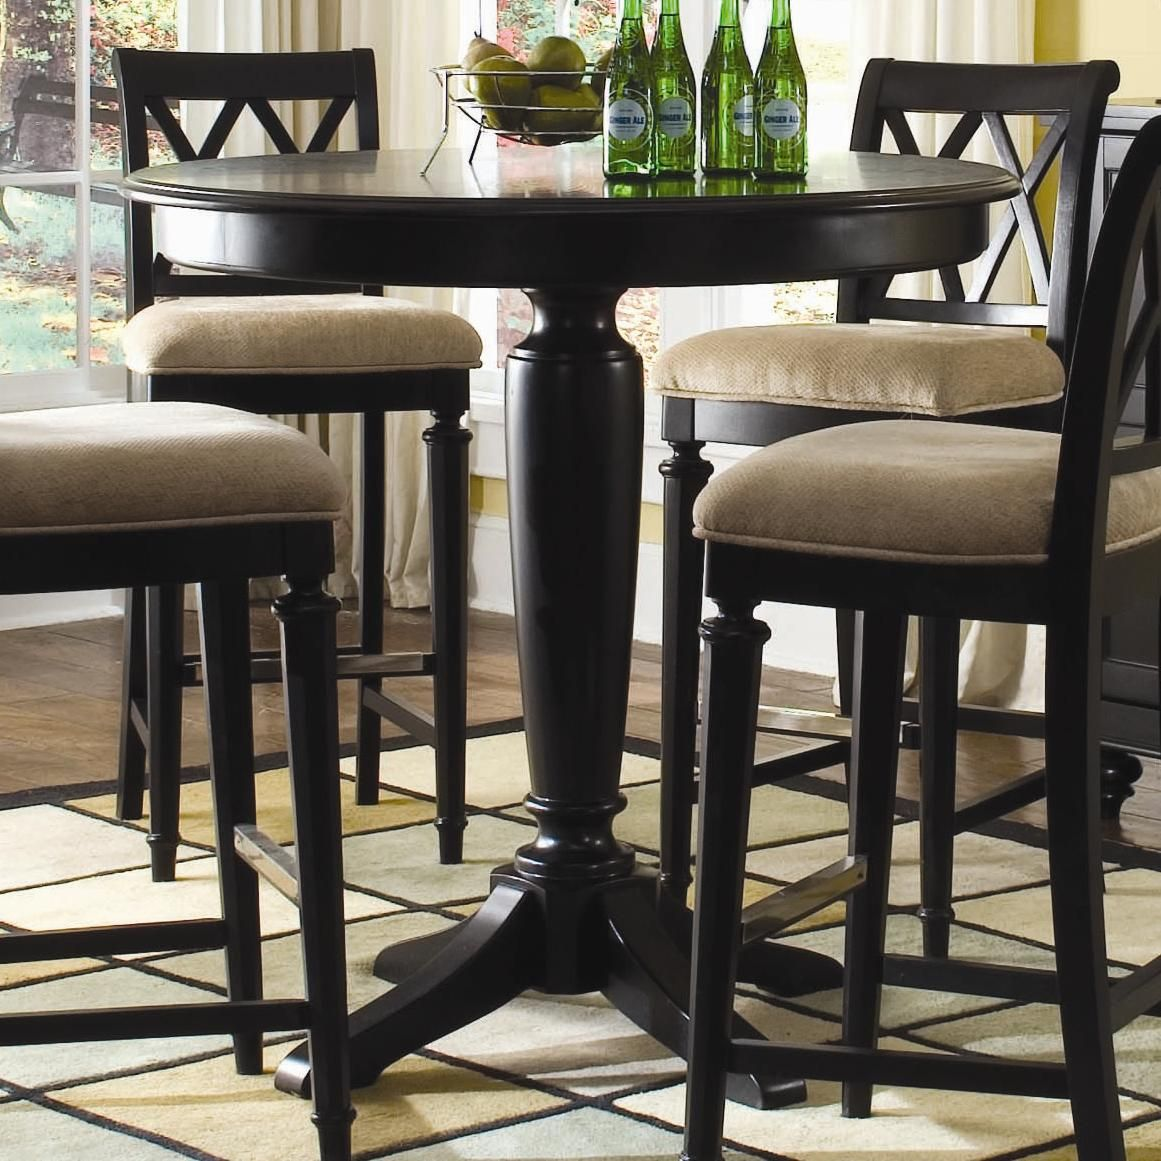 Counter Height Round Table And Chairs Stuhlede Com Tall Kitchen Table Bar Height Kitchen Table Round Table And Chairs